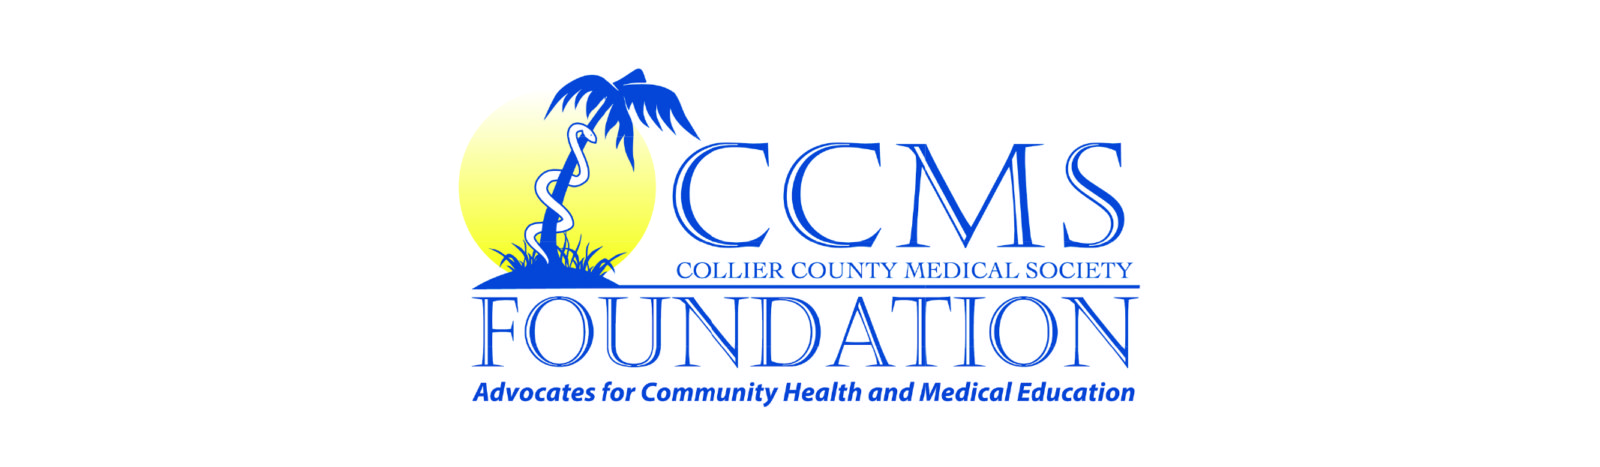 fccms-logo-for-web-banner2